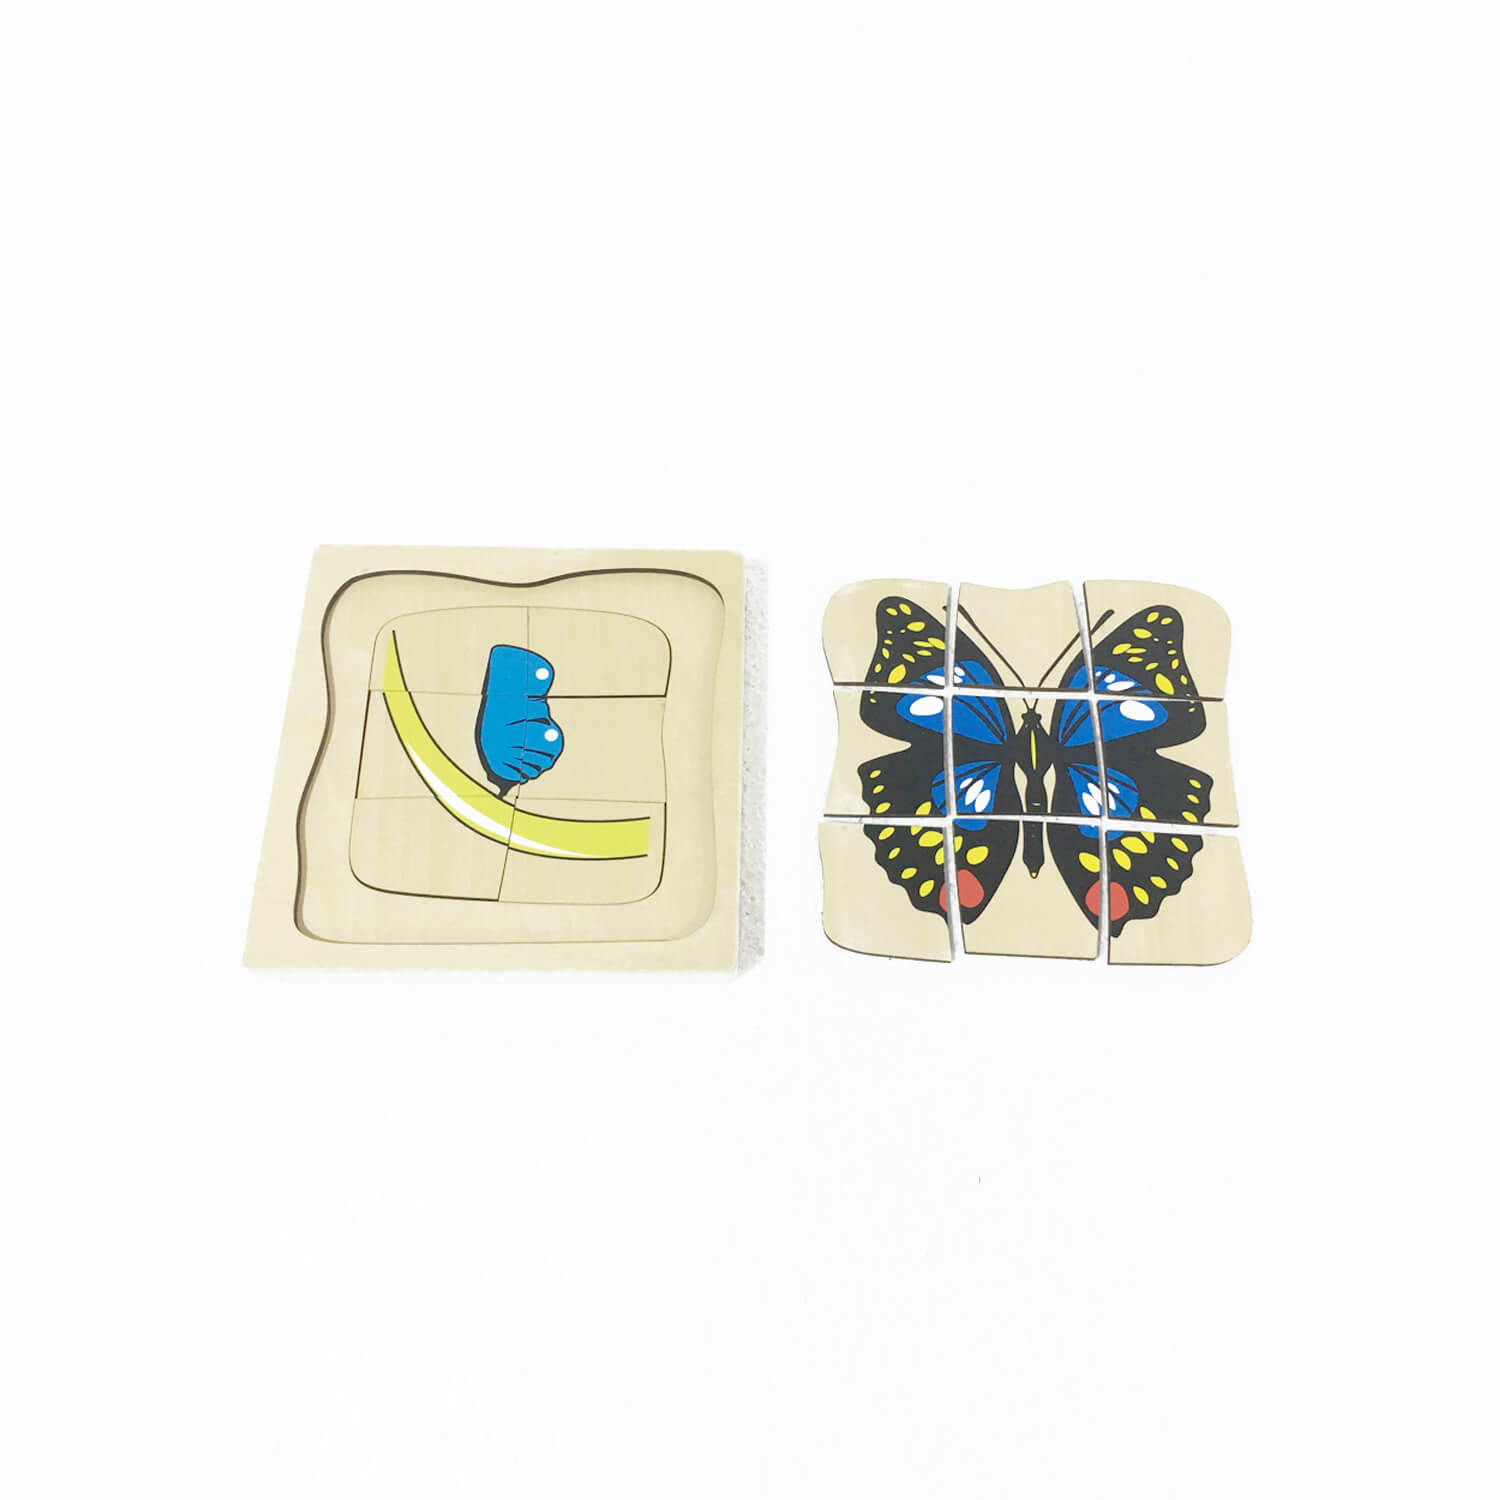 Animal Puzzle: Life Cycle Of Butterfly(5 Layers)